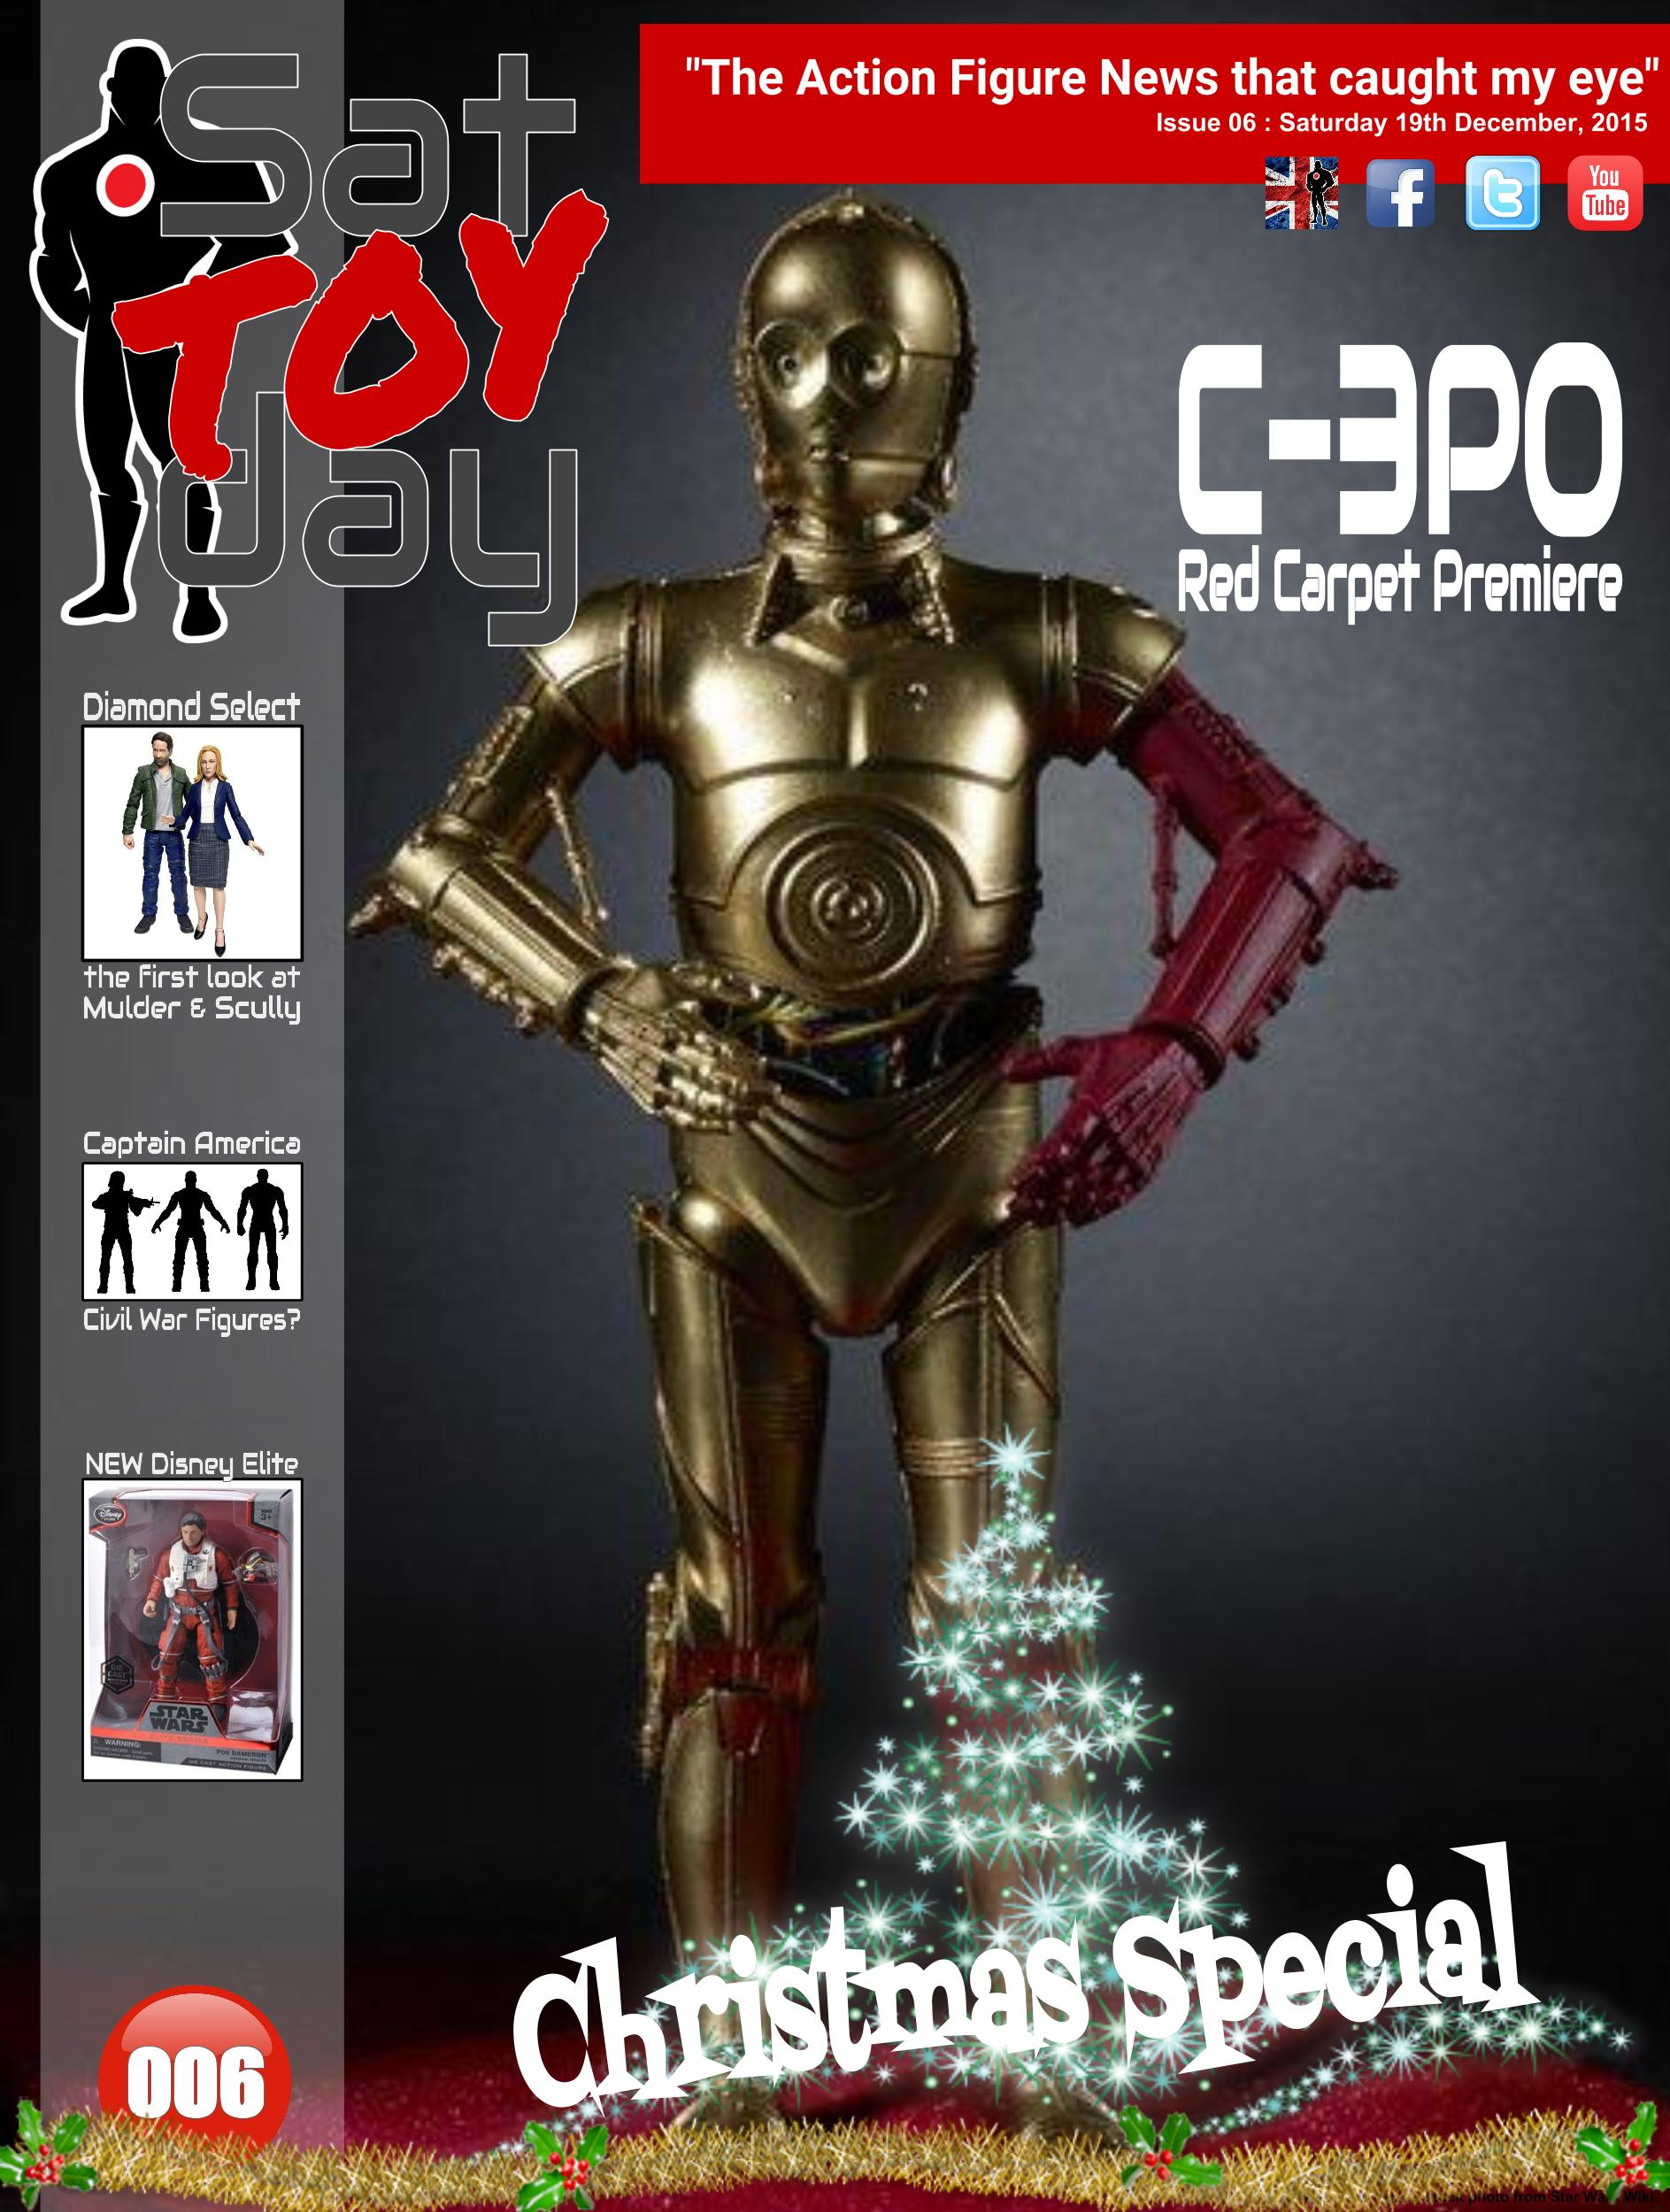 006 Action Figure Sat-TOY-day News, 19th December 2015